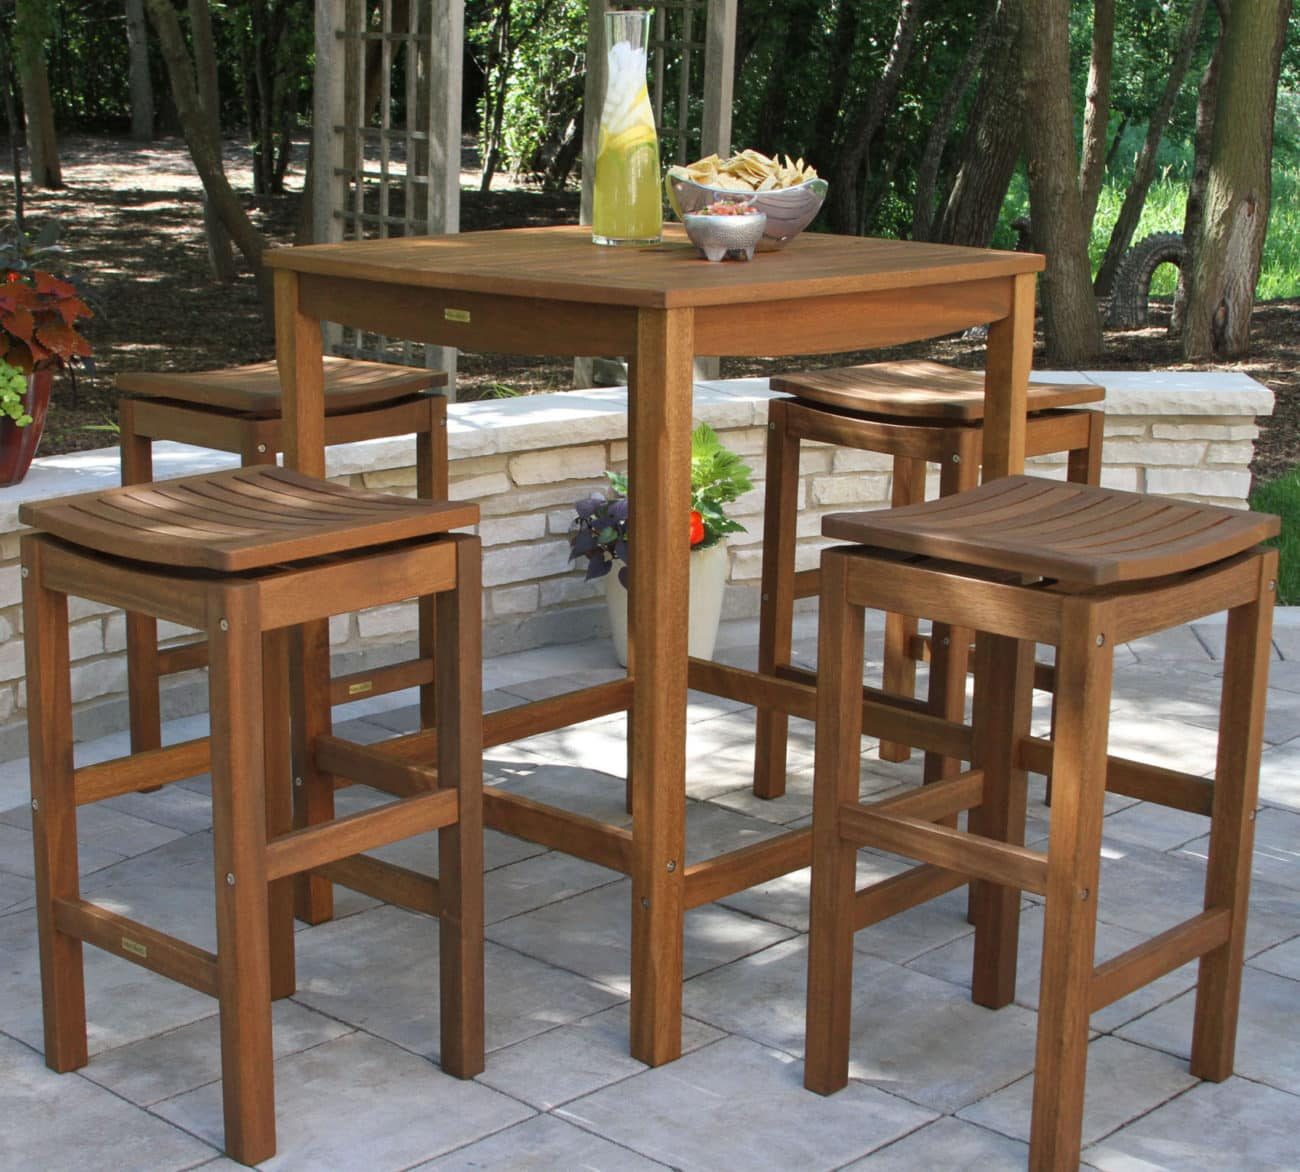 Enjoyable Hardwood Outdoor Bar Height Tables And Chairs For Patio Inzonedesignstudio Interior Chair Design Inzonedesignstudiocom